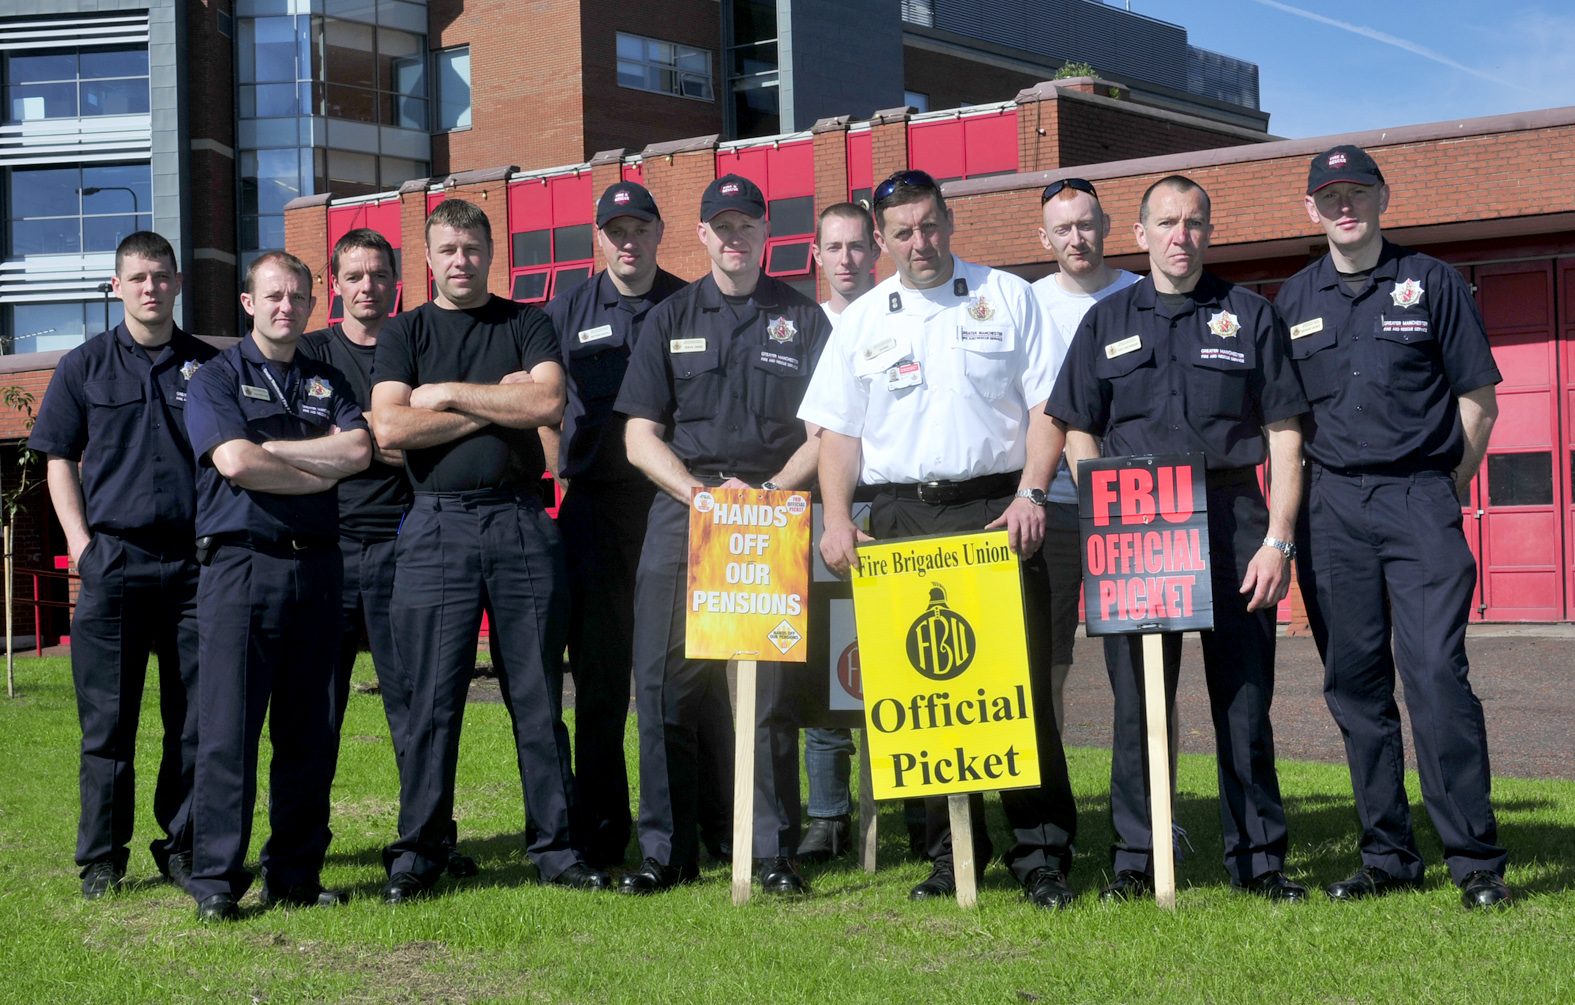 Bolton's firefighters begin their 24-hour strike